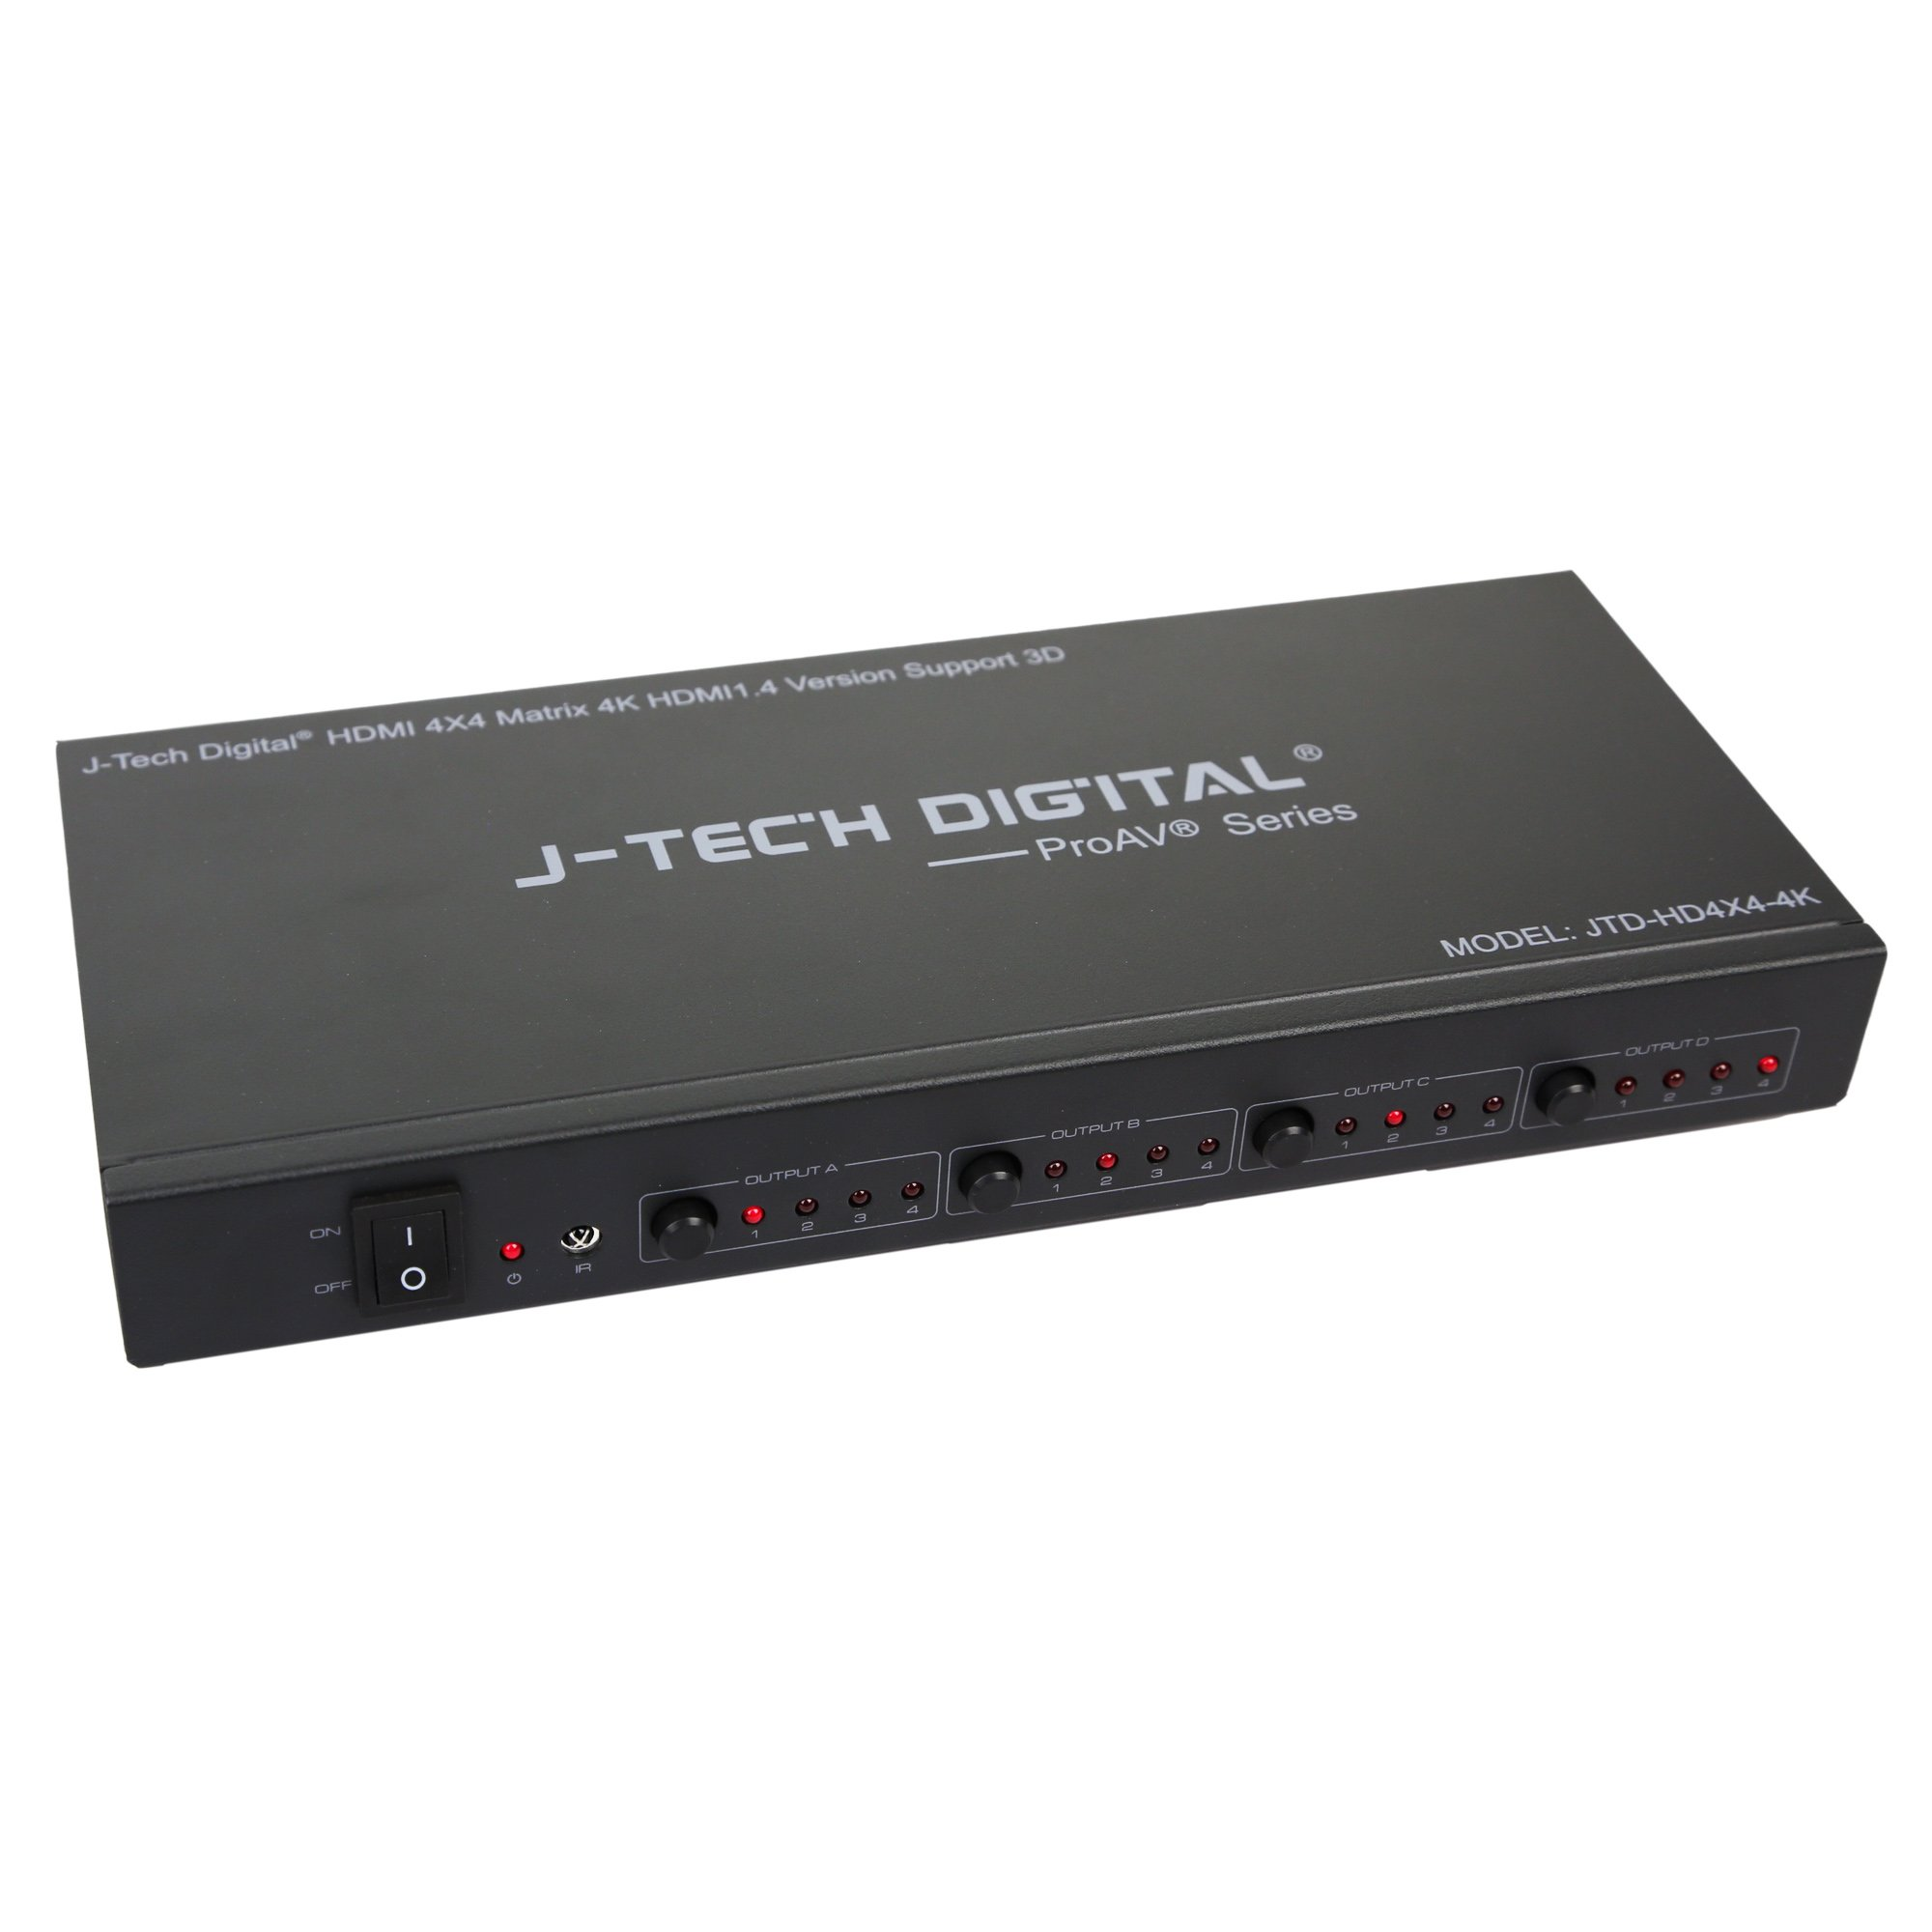 J-Tech Digital ProAV Ultra HD 4K HDMI 4X4 Matrix Switcher 4 Ports Inputs and 4 Port Outputs supports 4Kx2K@30HZ, HDCP, 3D & Deep Color, HDMI 1.4 Compliant